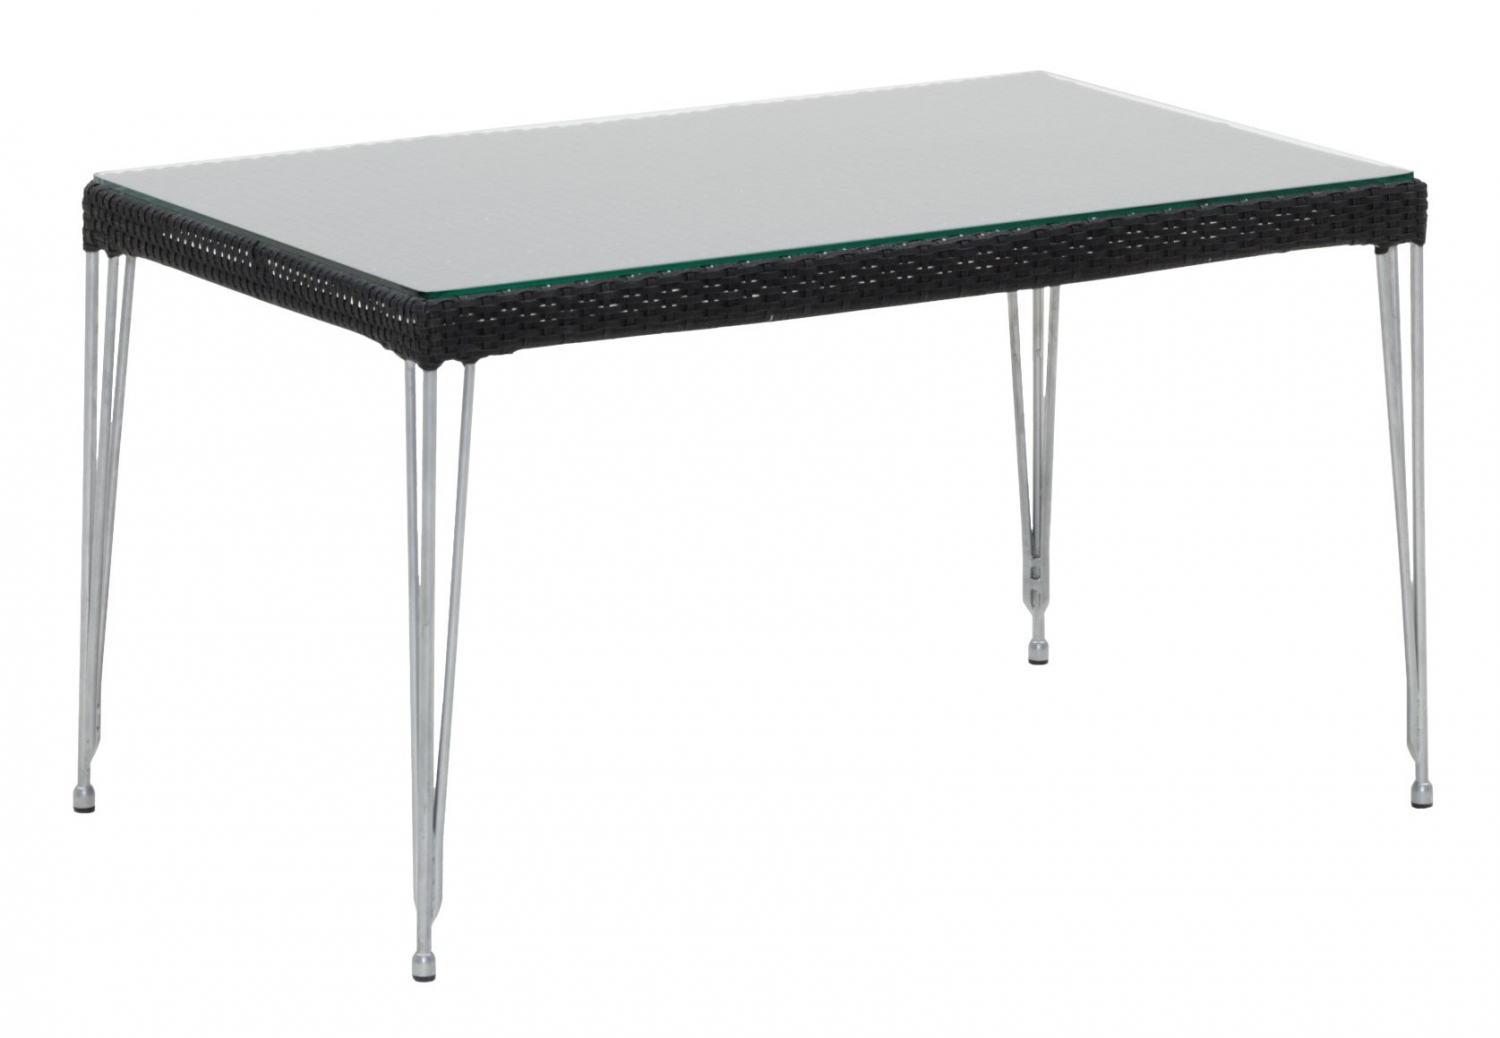 SIKA DESIGN Mercur 9410 havebord m/glasplade